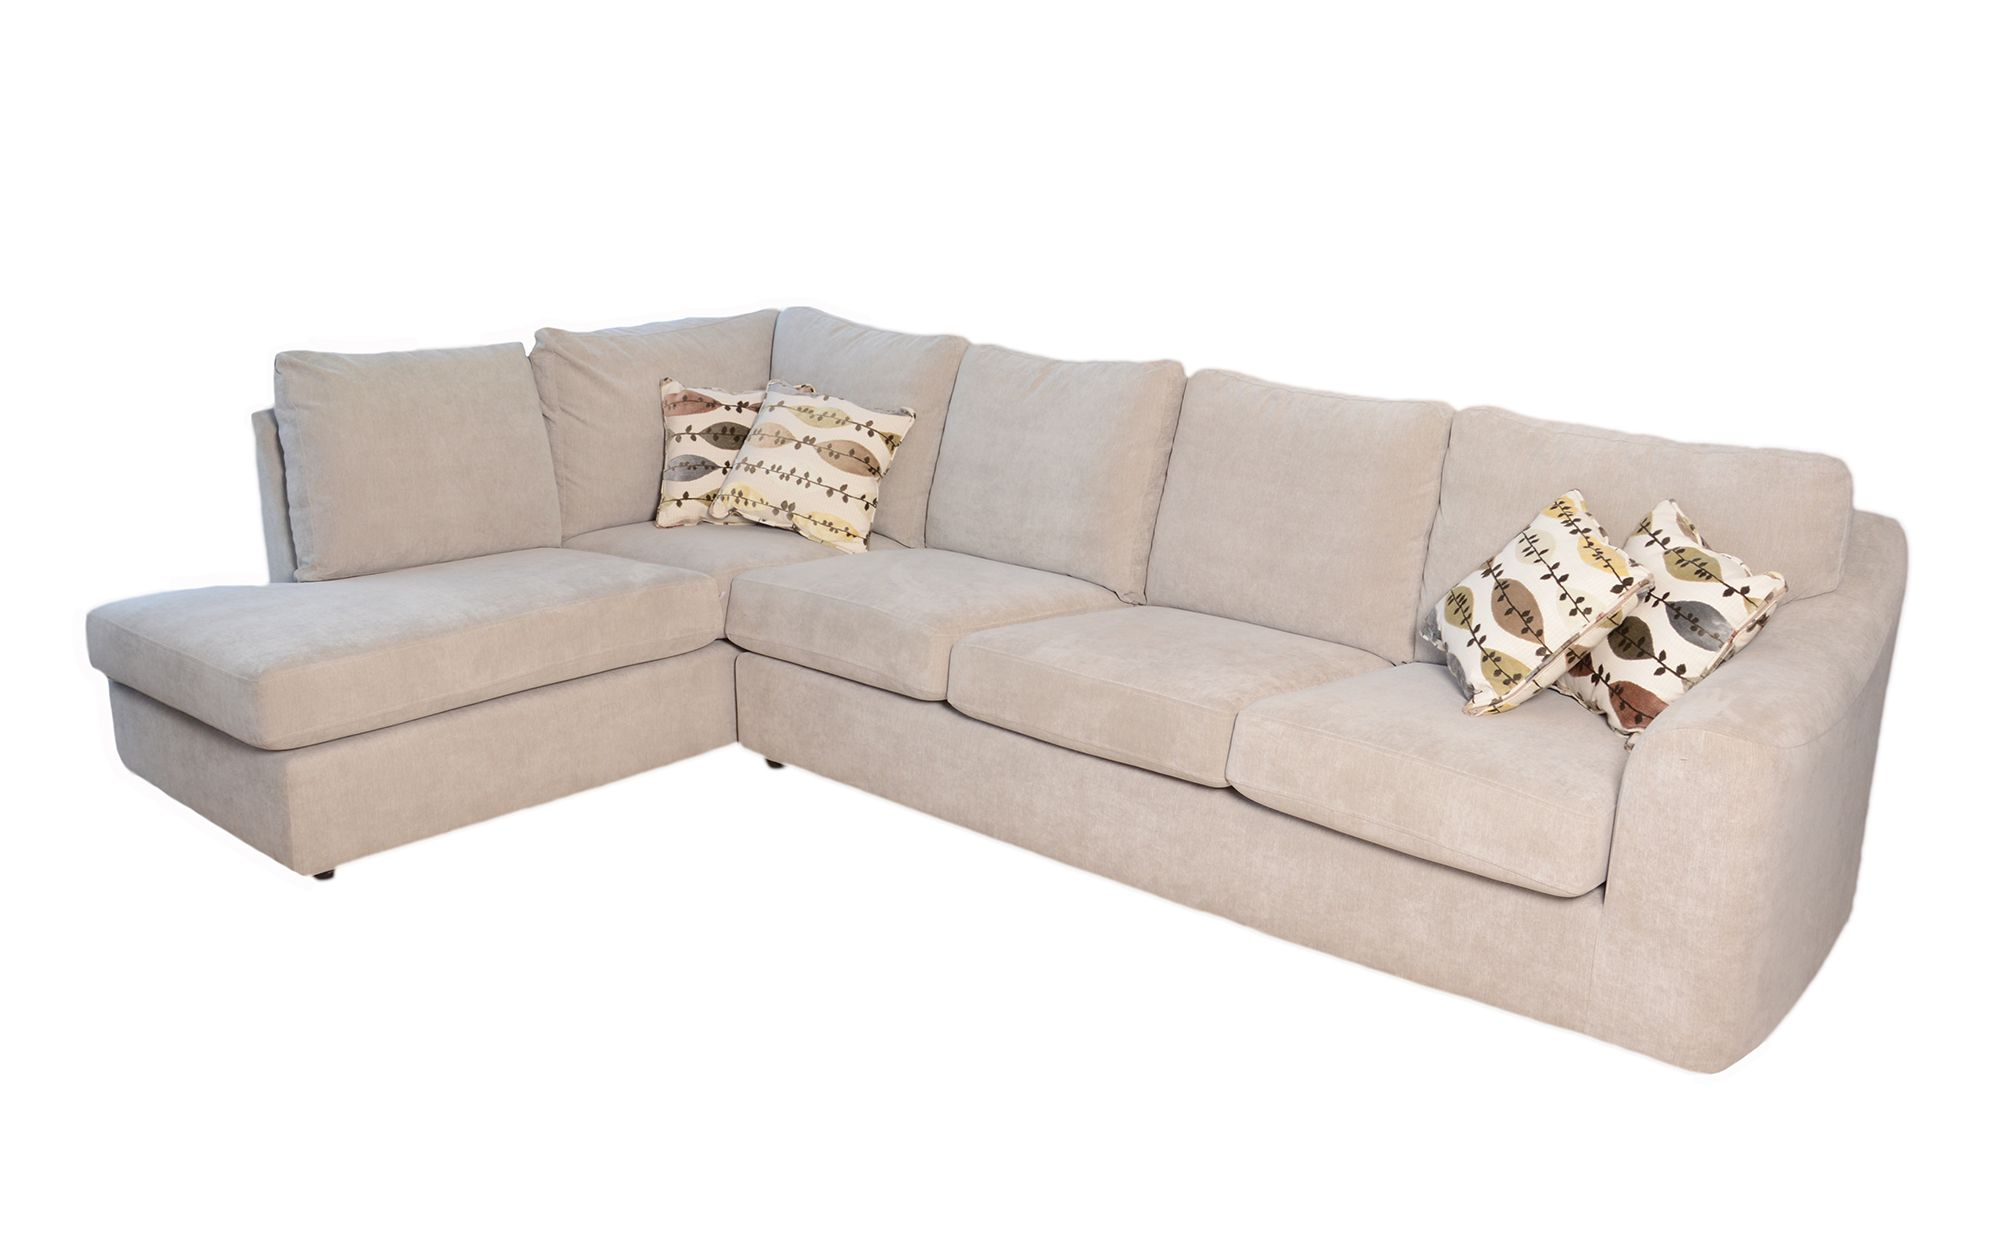 Meubles Furniture Ireland Pluto 4 Seater Corner Sofa C W Chaise Lhf Fabric A Meubles